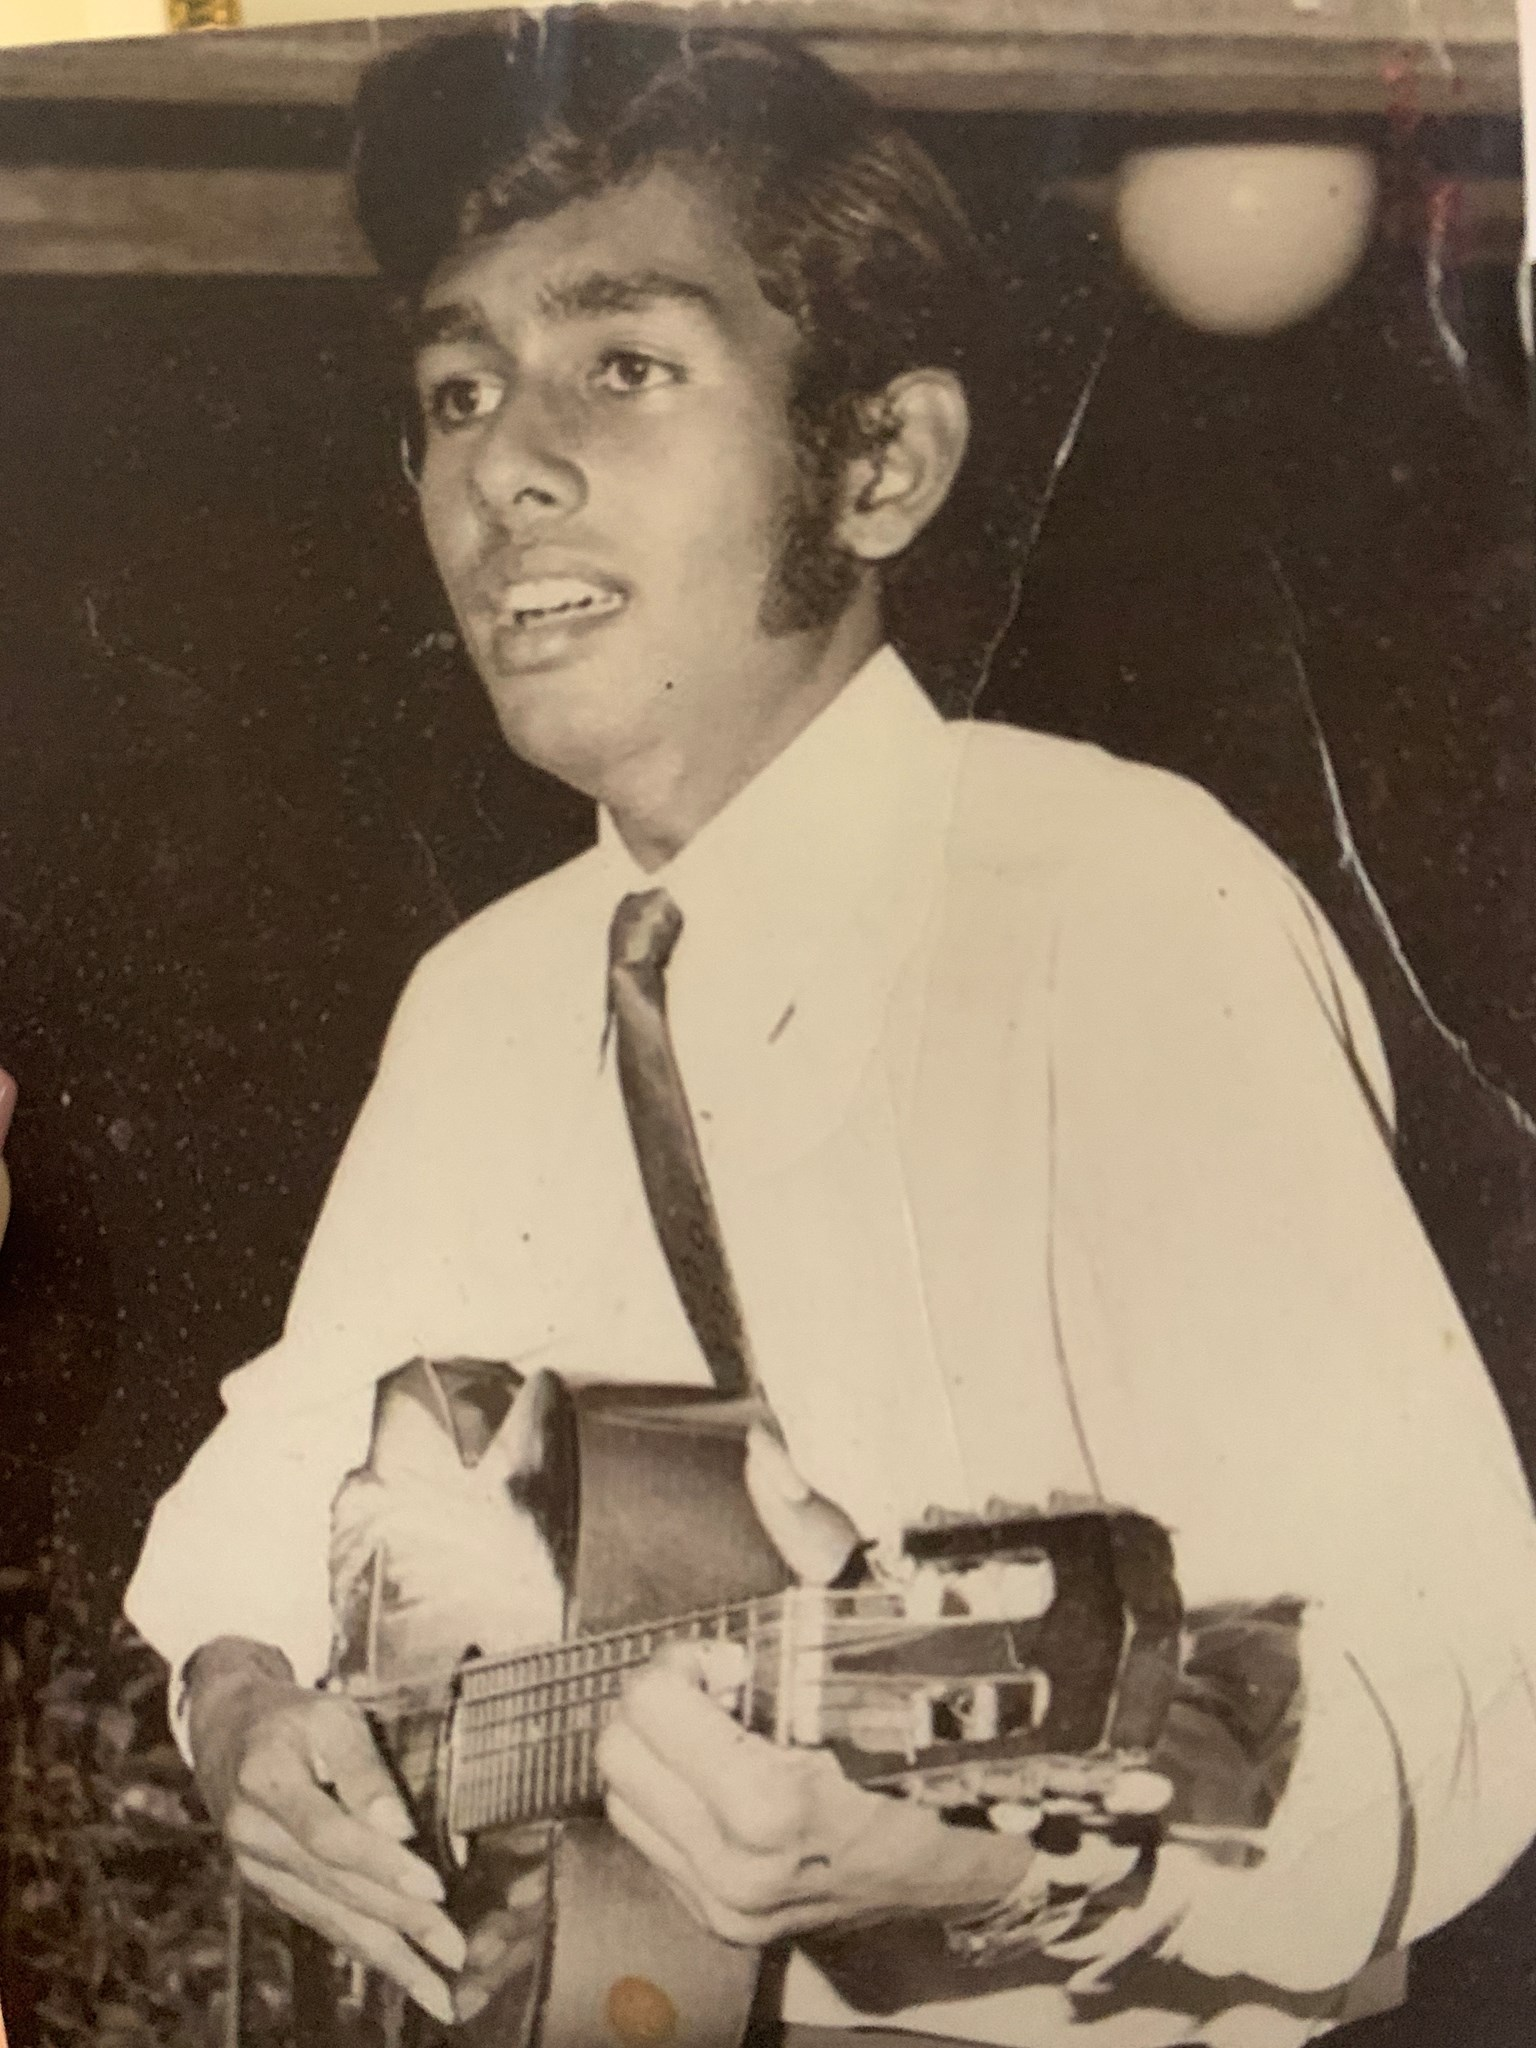 With his first love - the guitar!